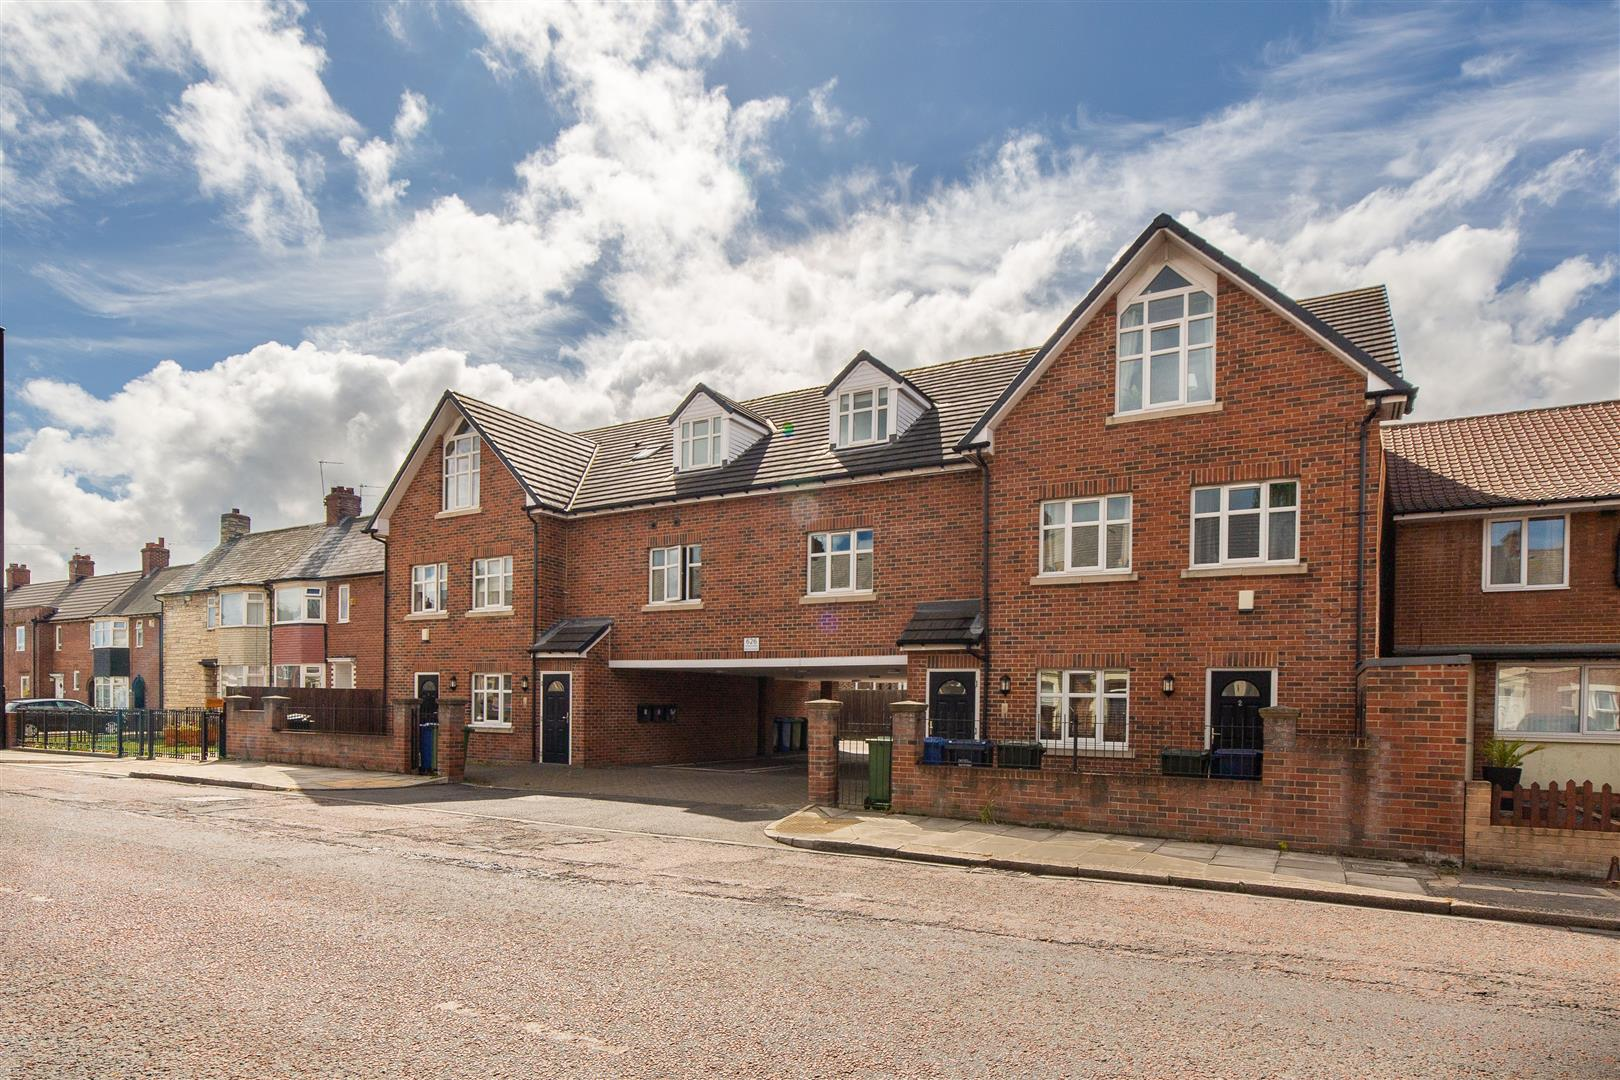 2 bed apartment to rent in Walker, NE6 4JS  - Property Image 1